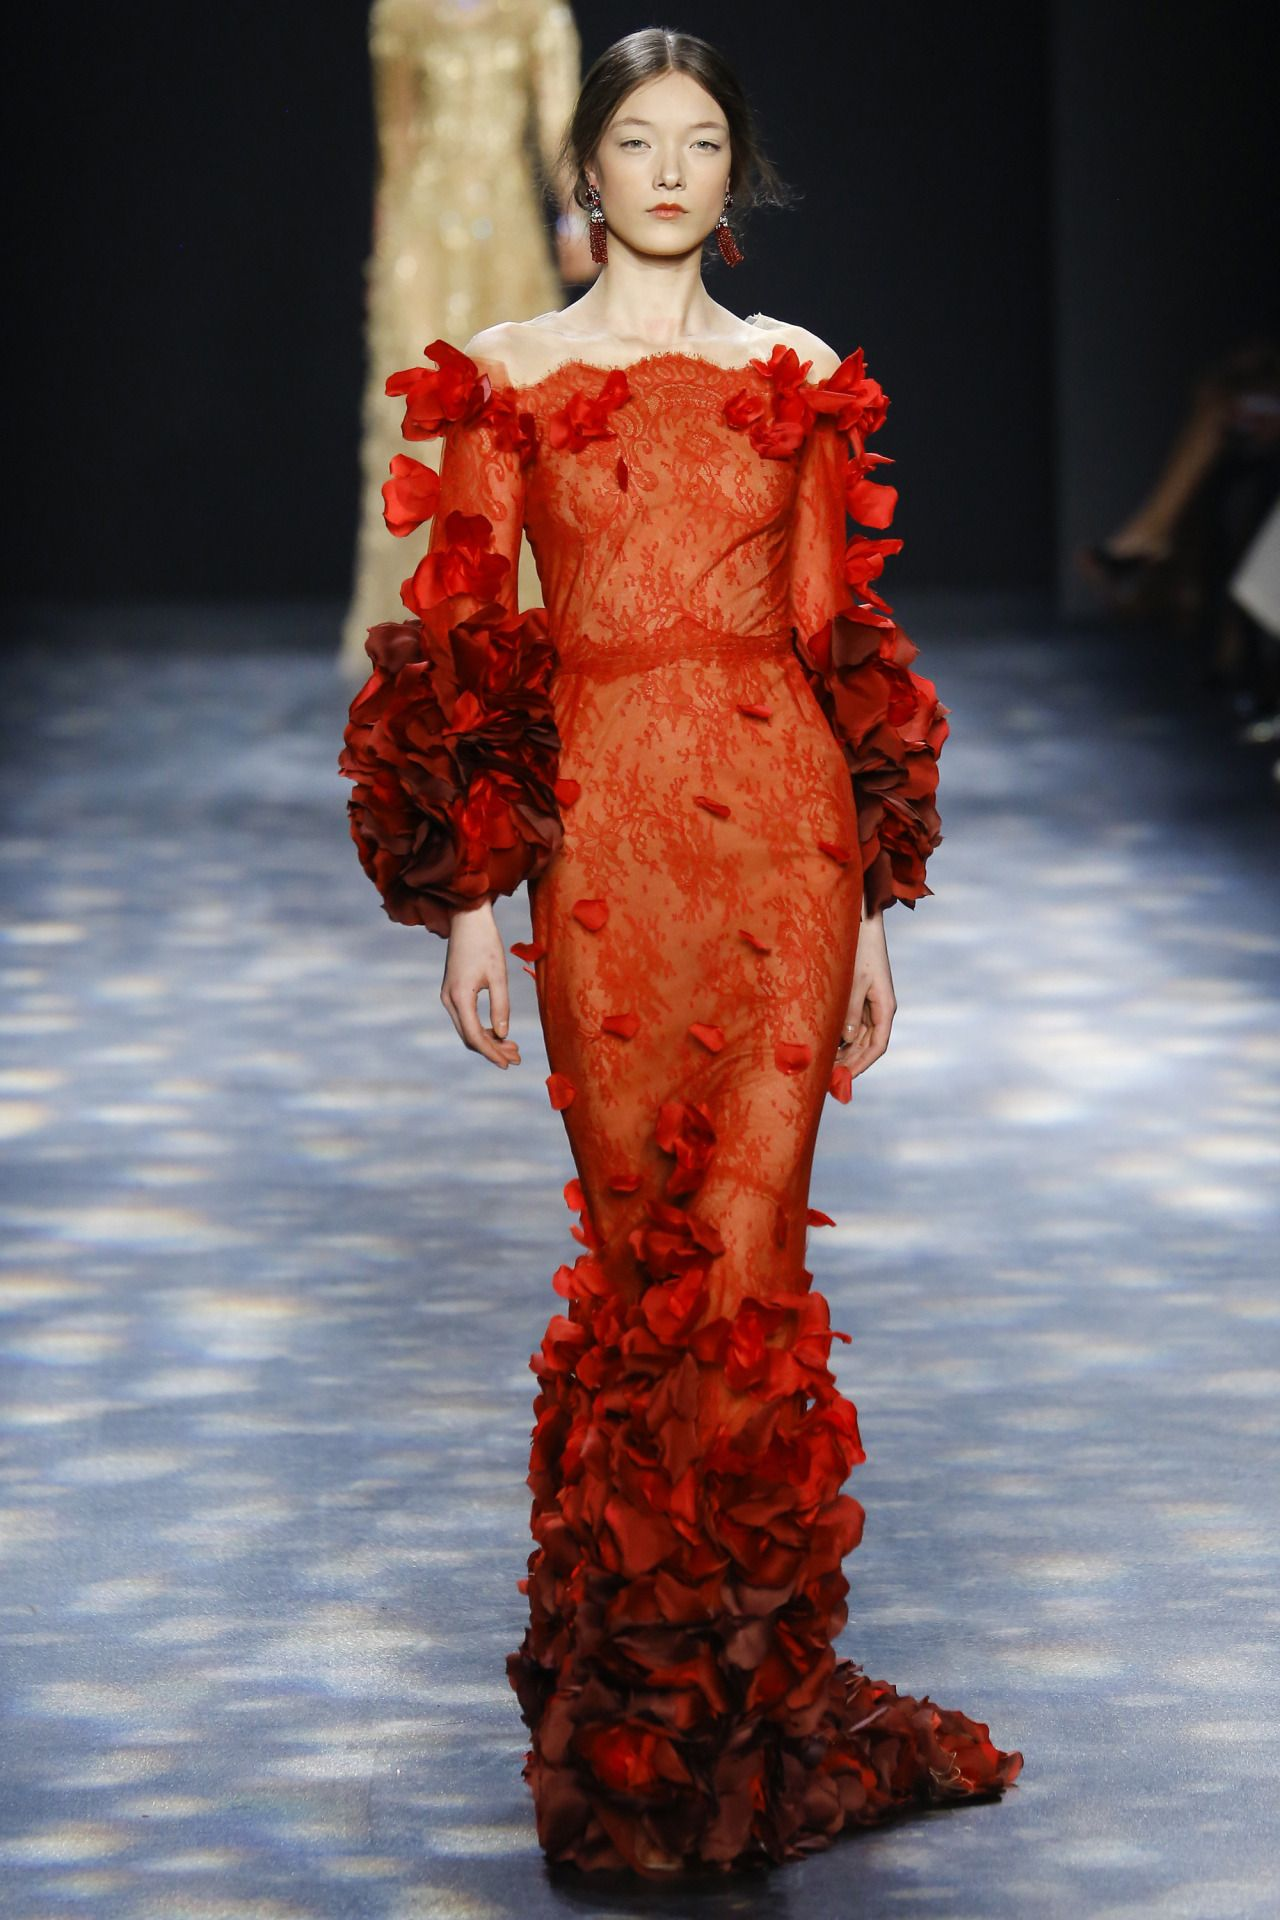 Katy Perry Roter Teppich Marchesa New York Fashion Week Fall 2016 Lachs Coral